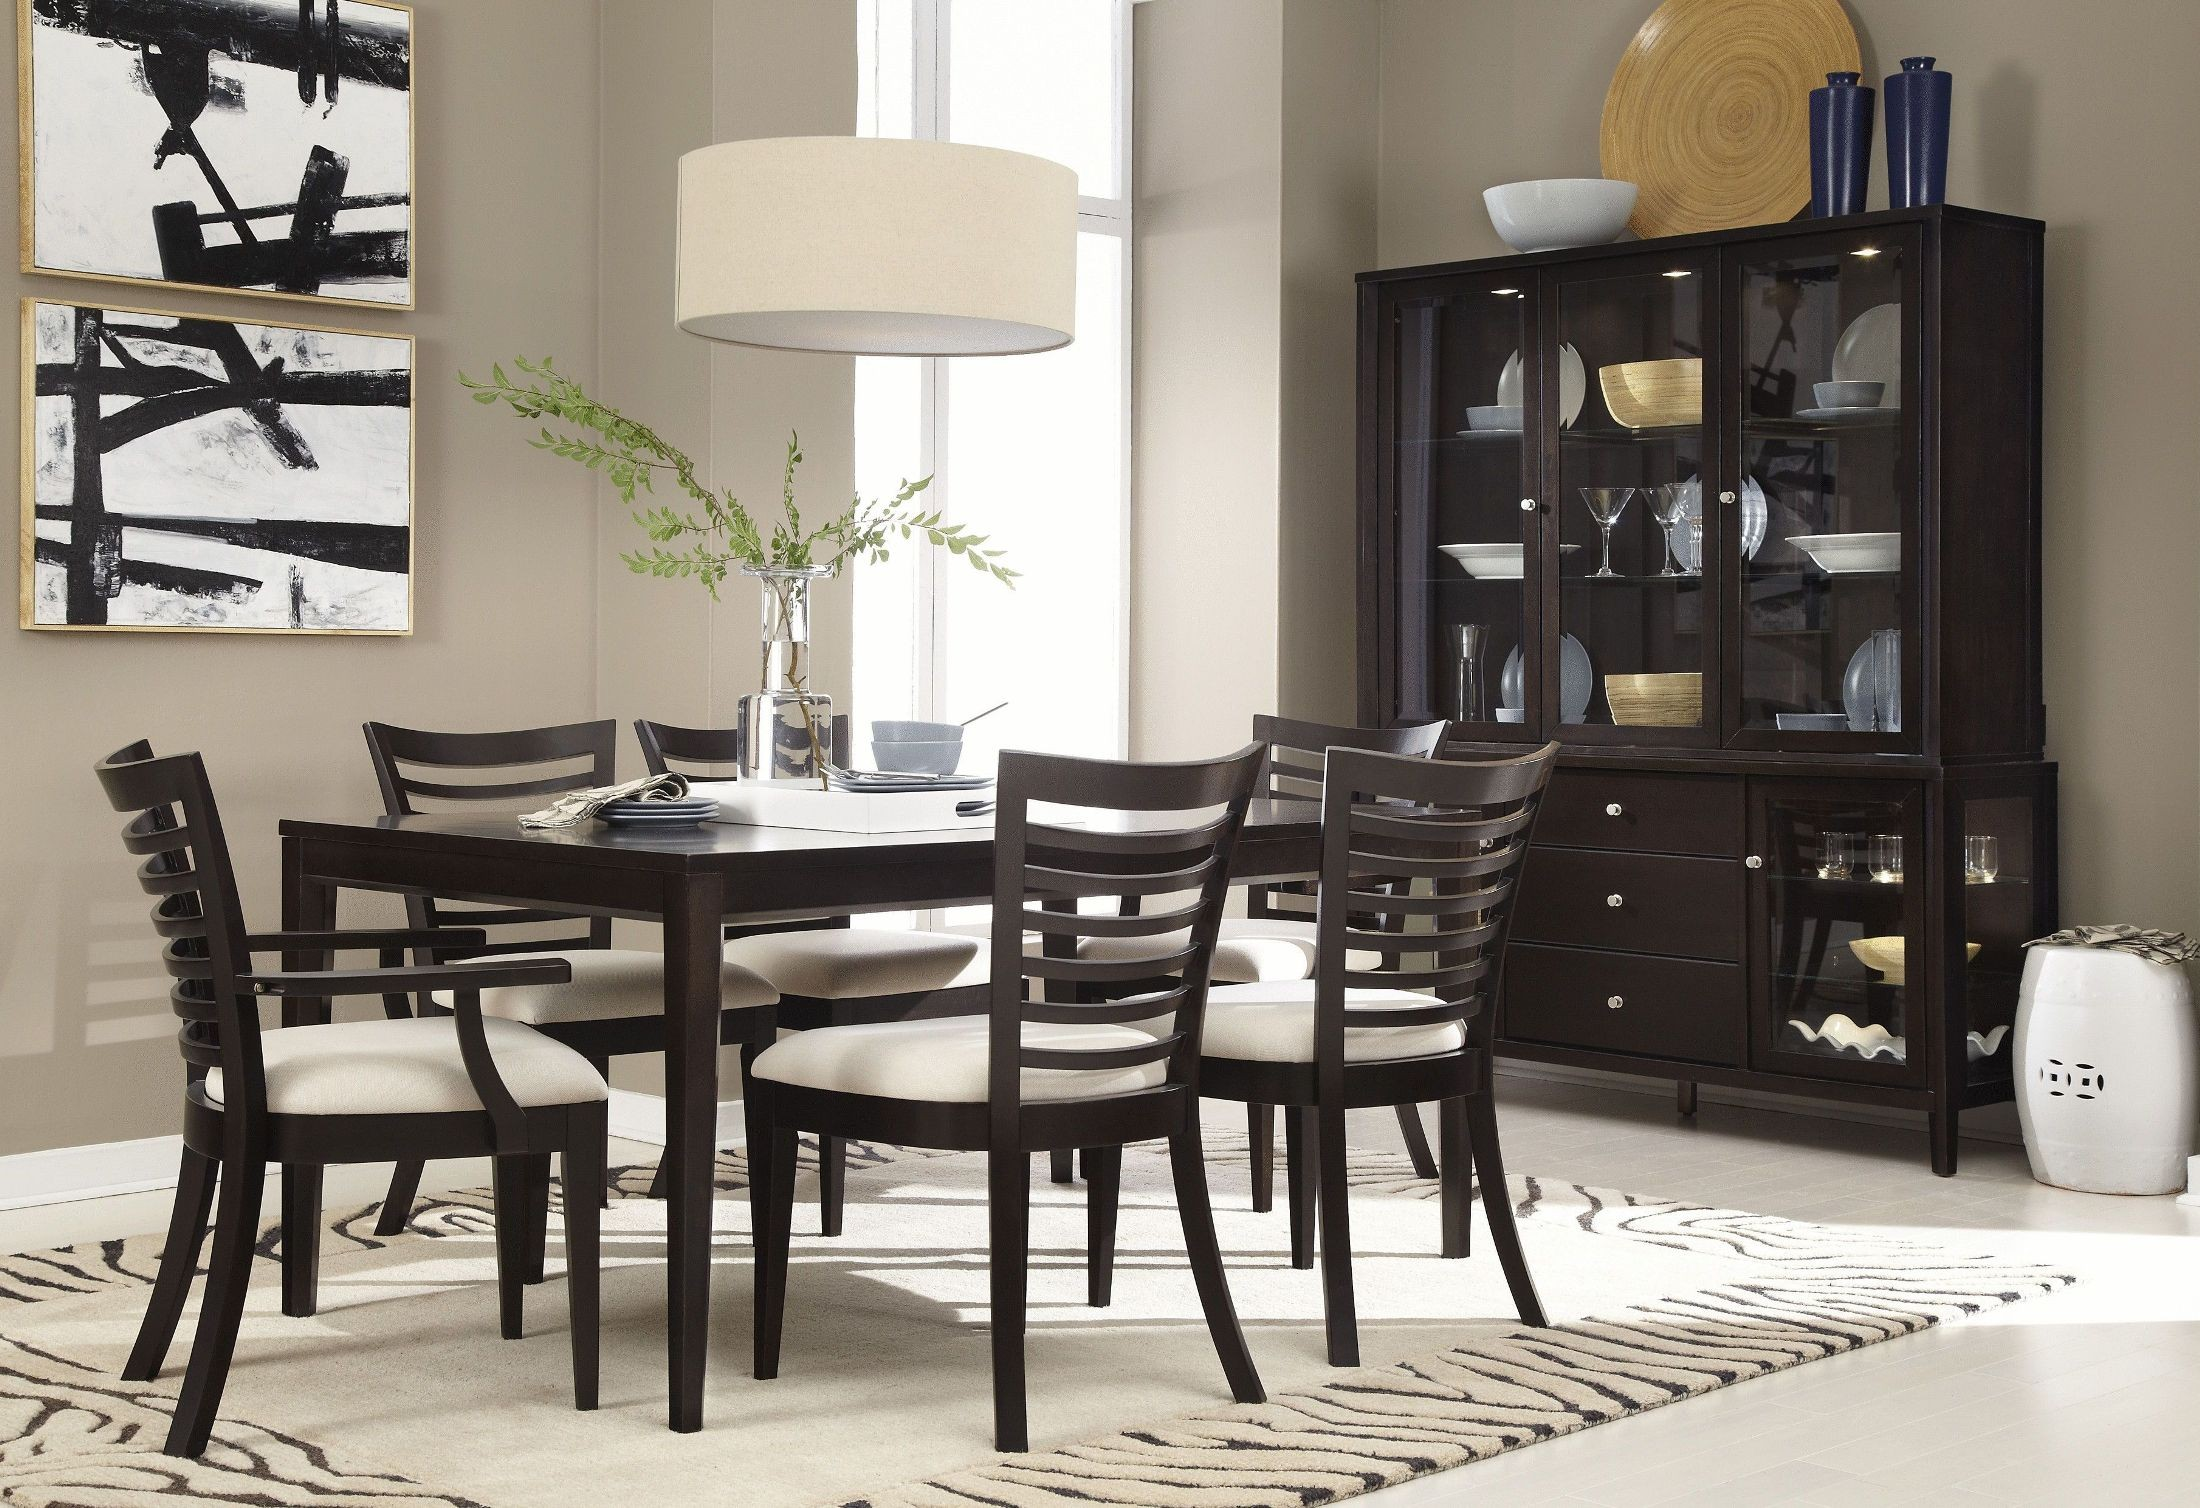 Beckett brown 7 piece dining room set 355 150k7p casana for 7 piece dining room set